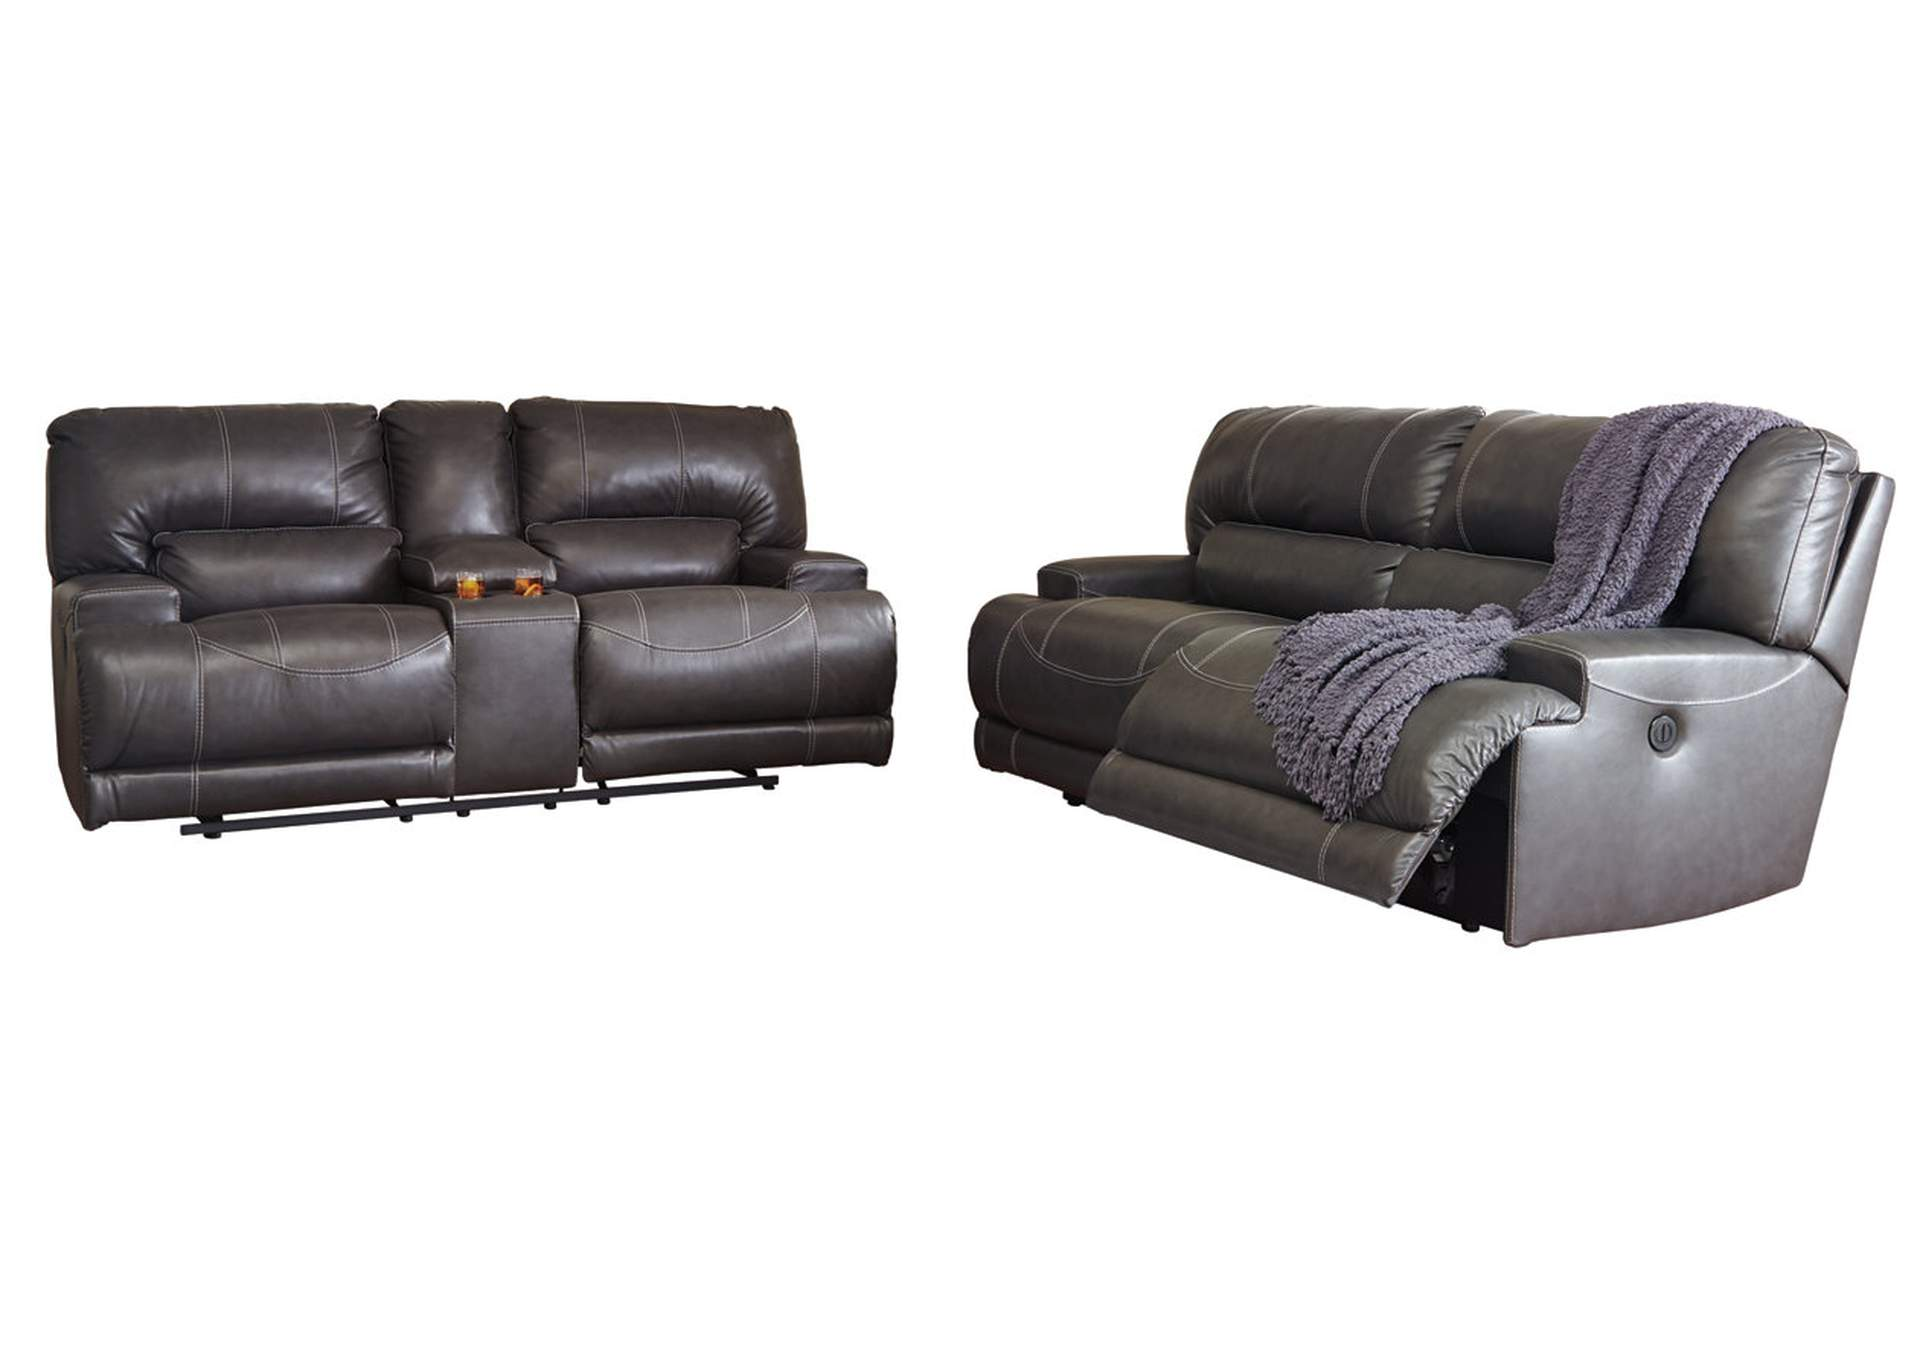 Superb Joe Bs Furniture Mccaskill Gray 2 Seat Reclining Sofa Beutiful Home Inspiration Cosmmahrainfo